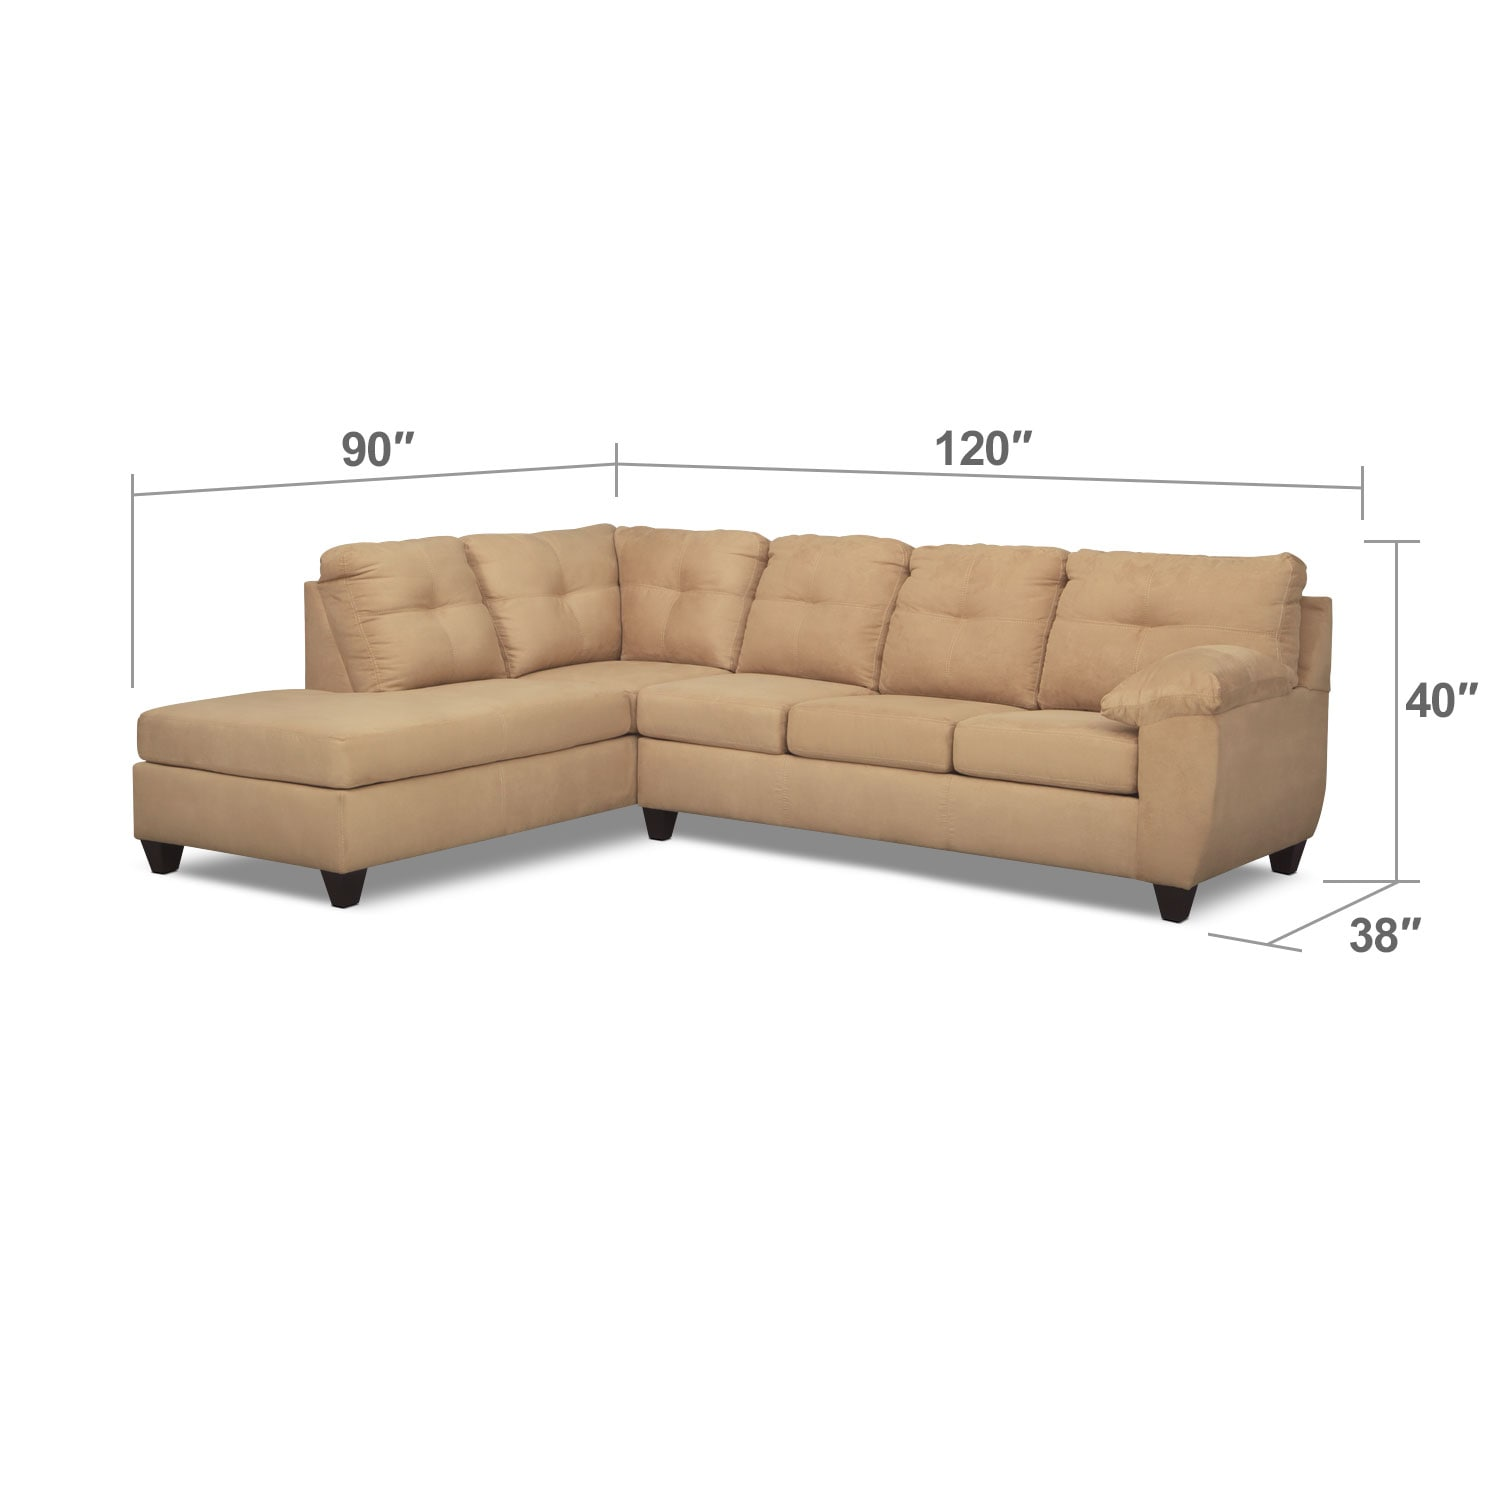 Living Room Furniture - Rialto 2-Piece Innerspring Sleeper Sectional with Left-Facing Chaise - Camel